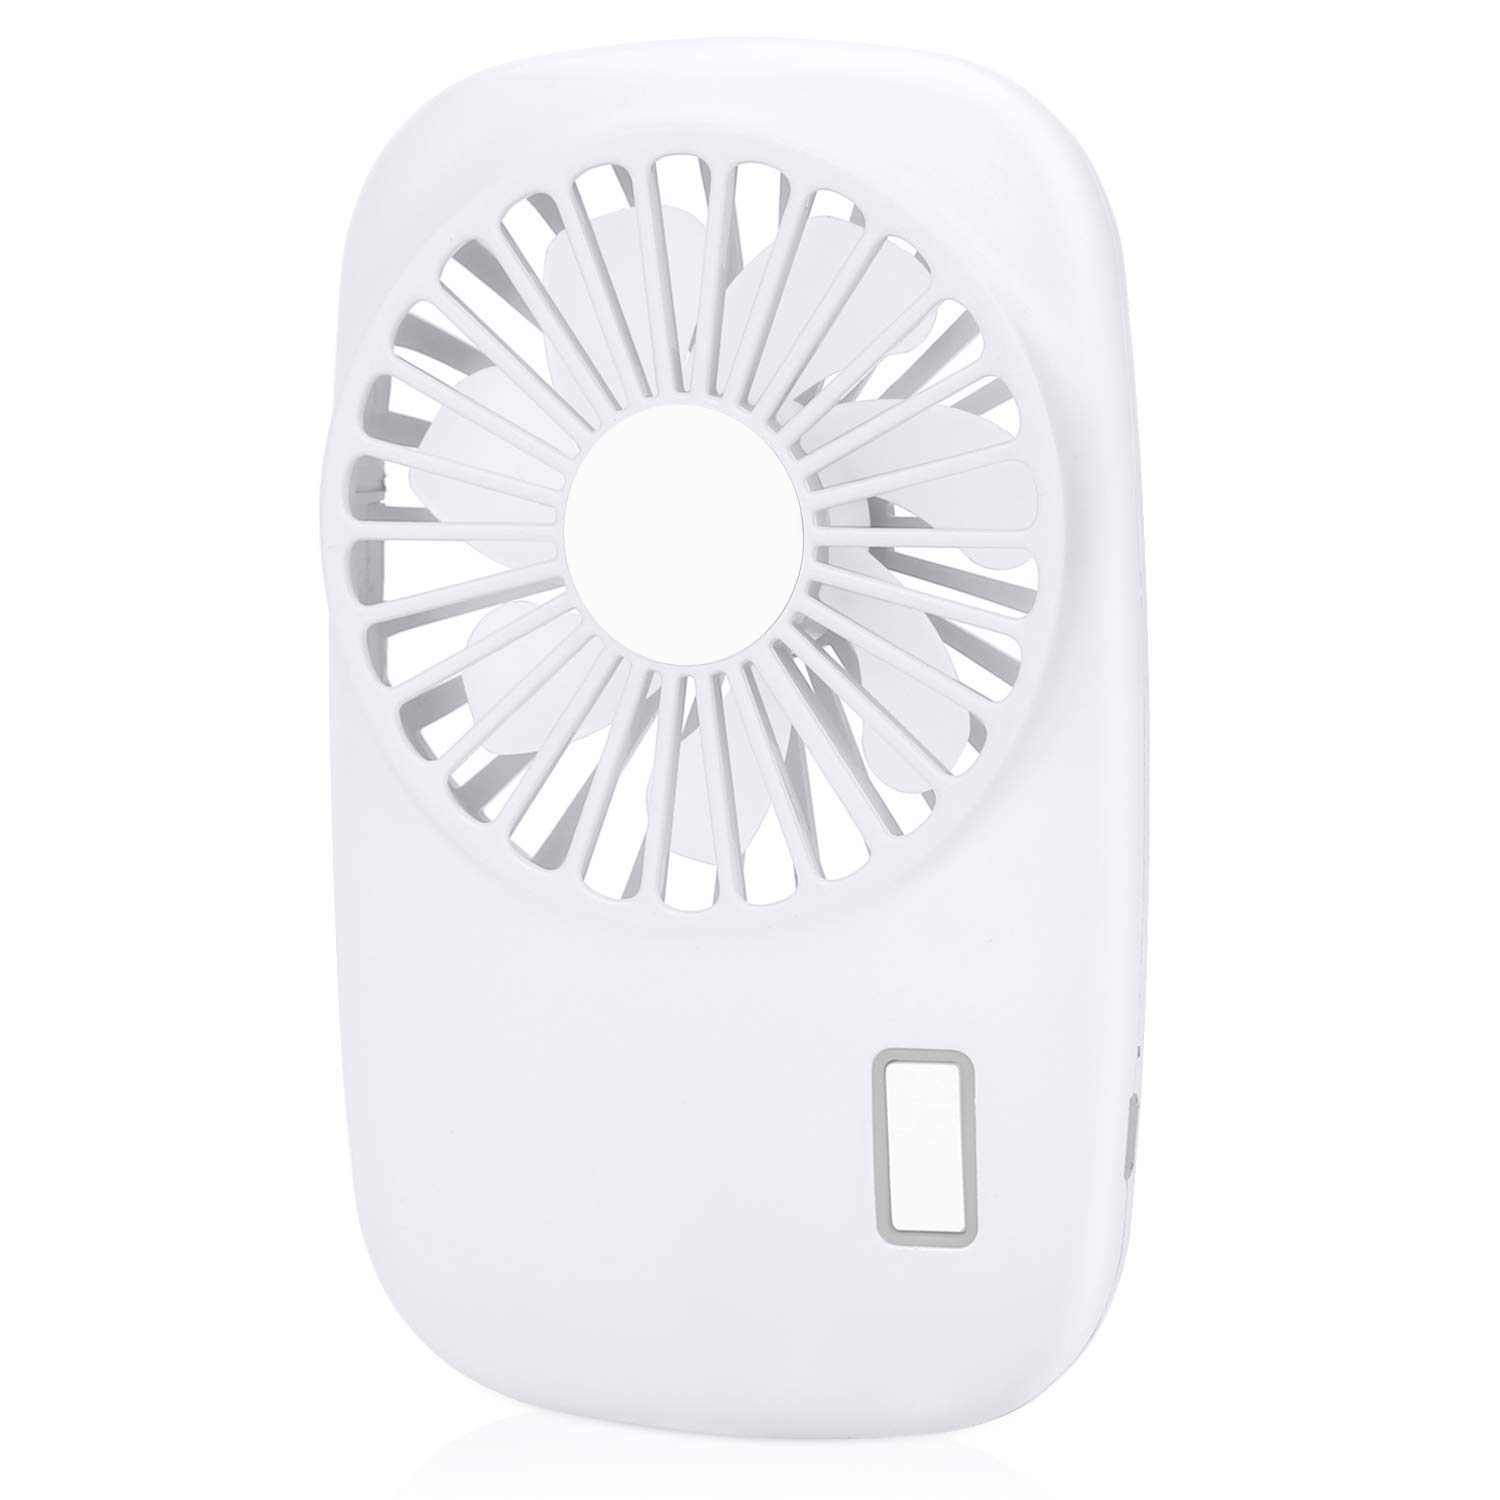 Handheld Mini Pocket Quiet Fan Speed Adjustable USB Rechargeable Personal Portable Fan for Camping Hiking or Reading White